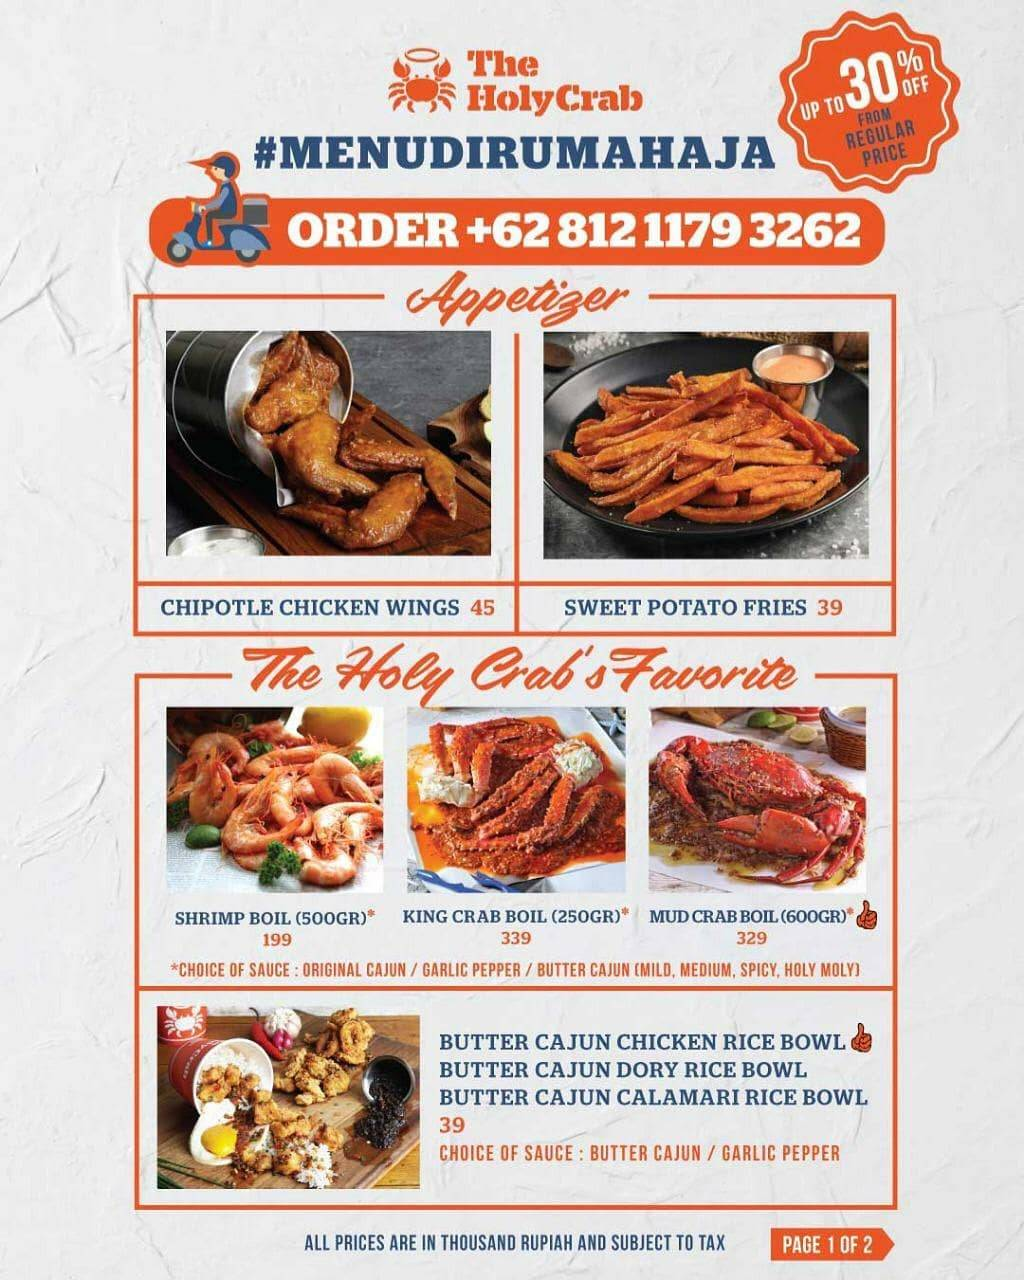 The Holy Crab Promo Discount Up To 30% For Stay Home Menu